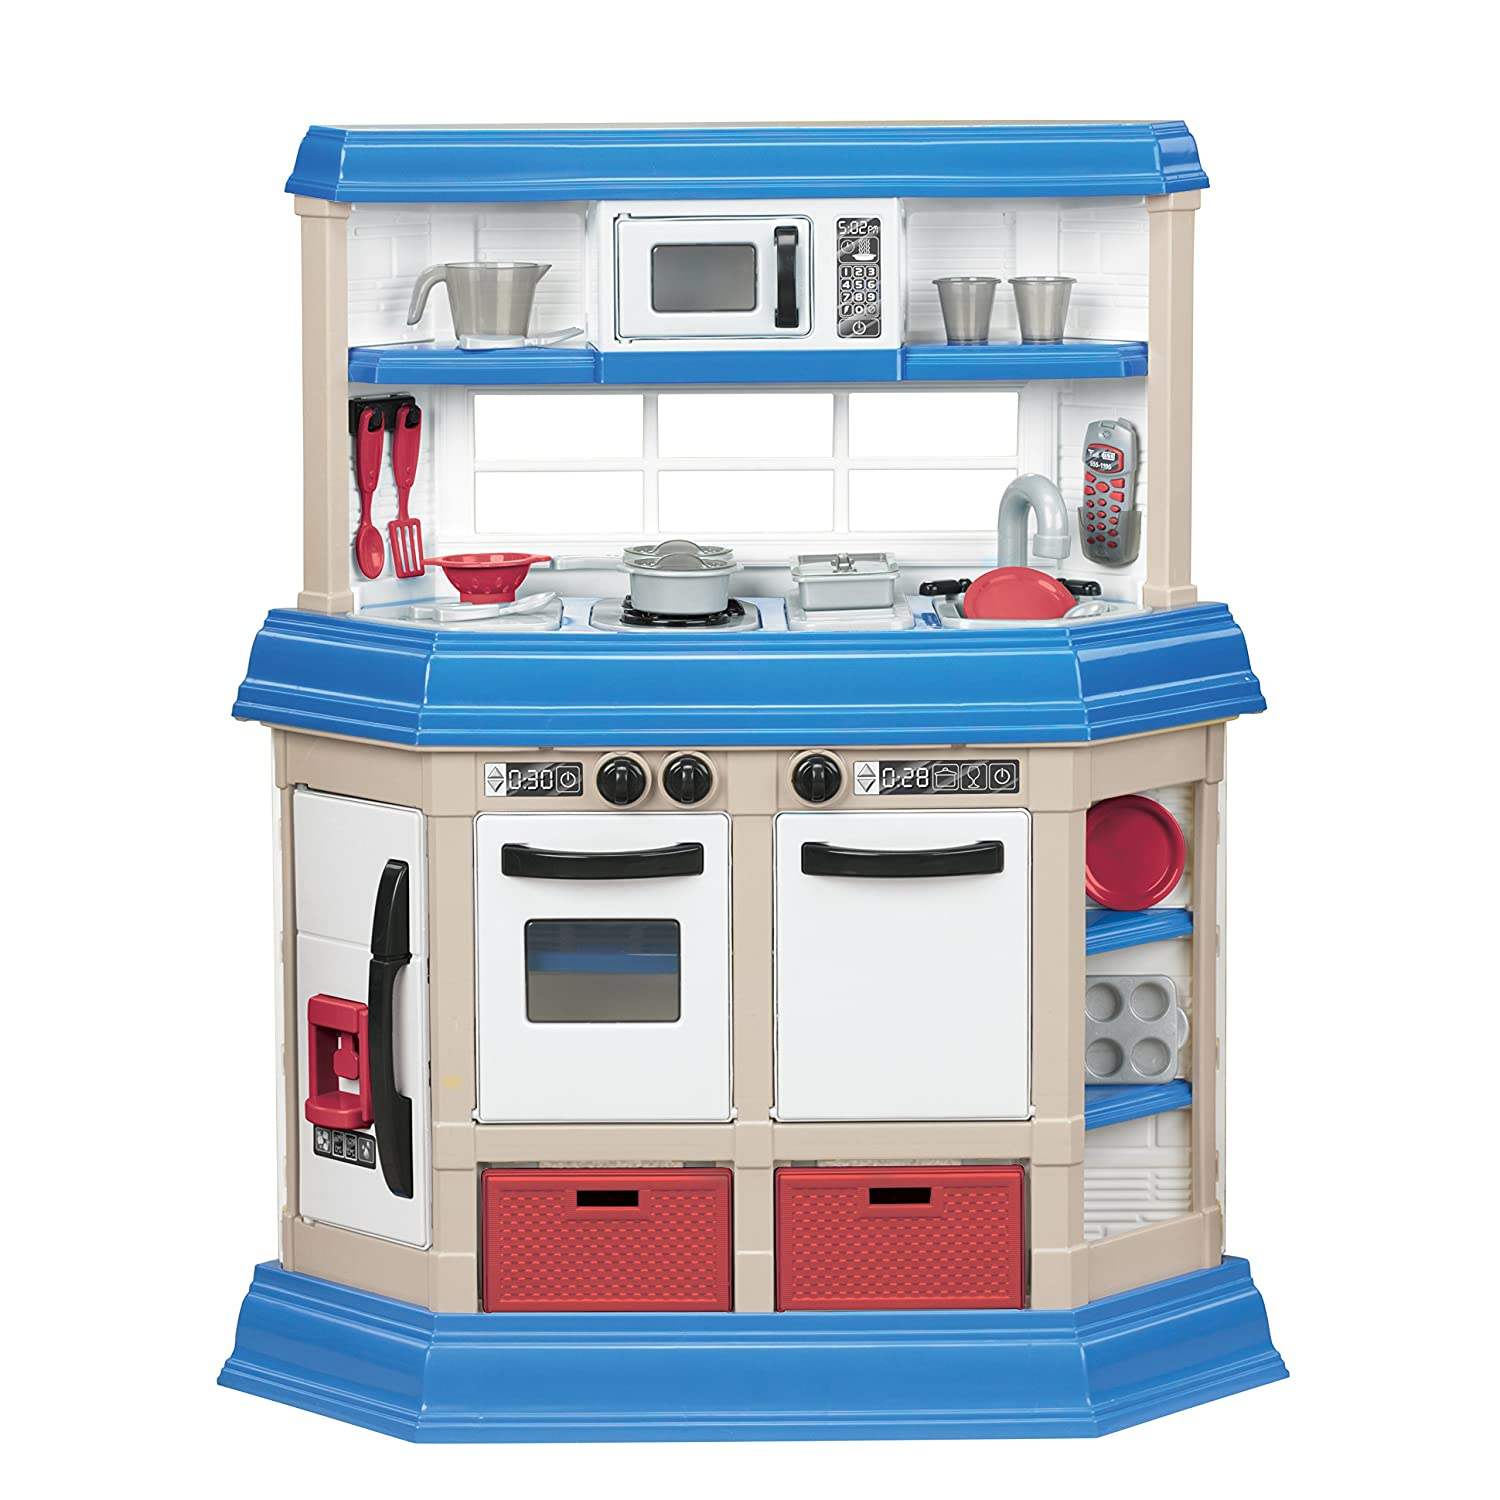 Amazon.com: American Plastic Toy Cookin\' Kitchen: Toys & Games